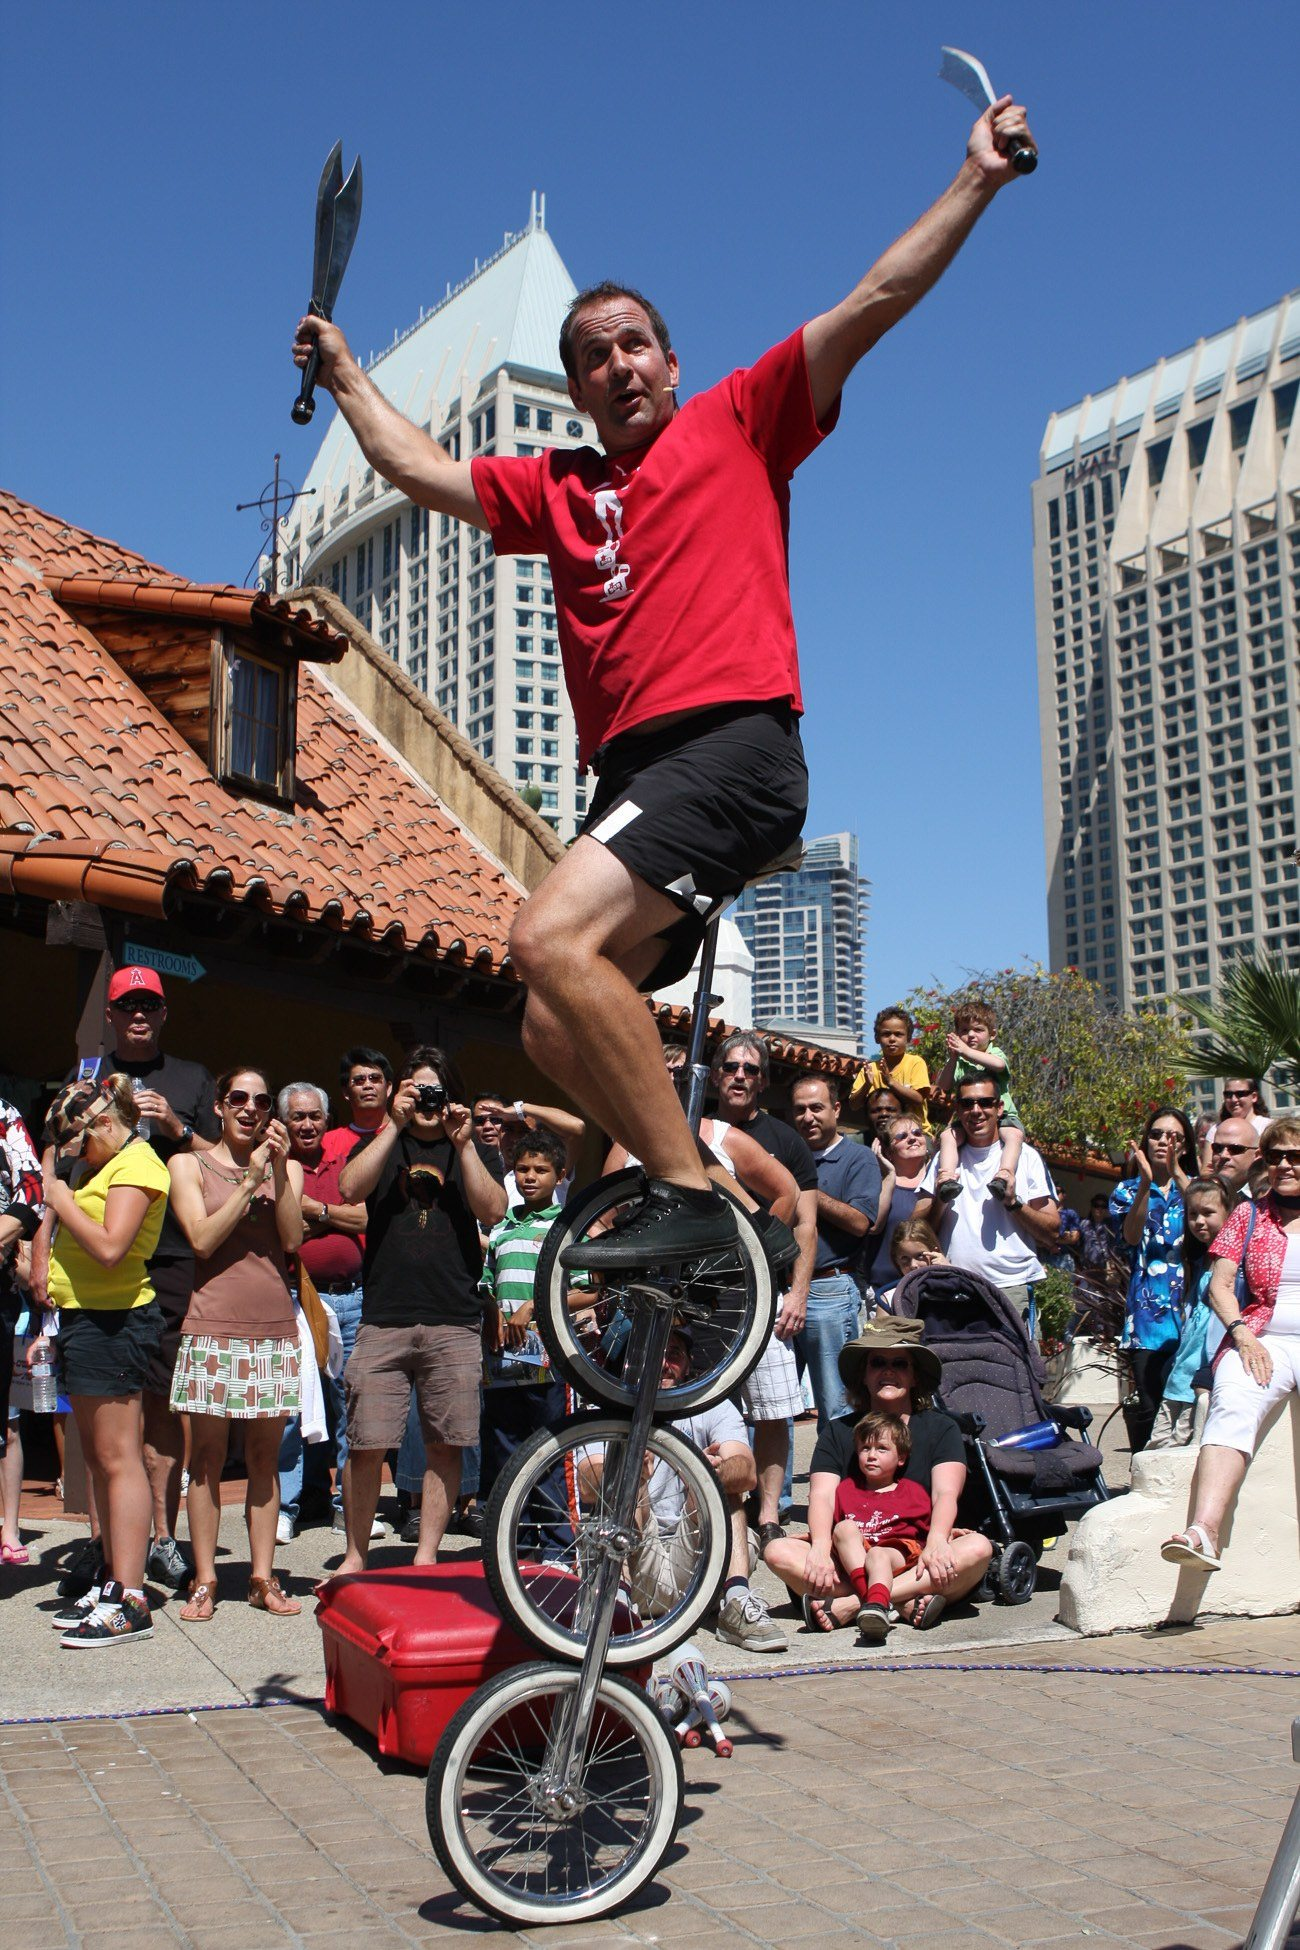 Find out more about the Seaport Village Buskar Festival happening in San Diego.